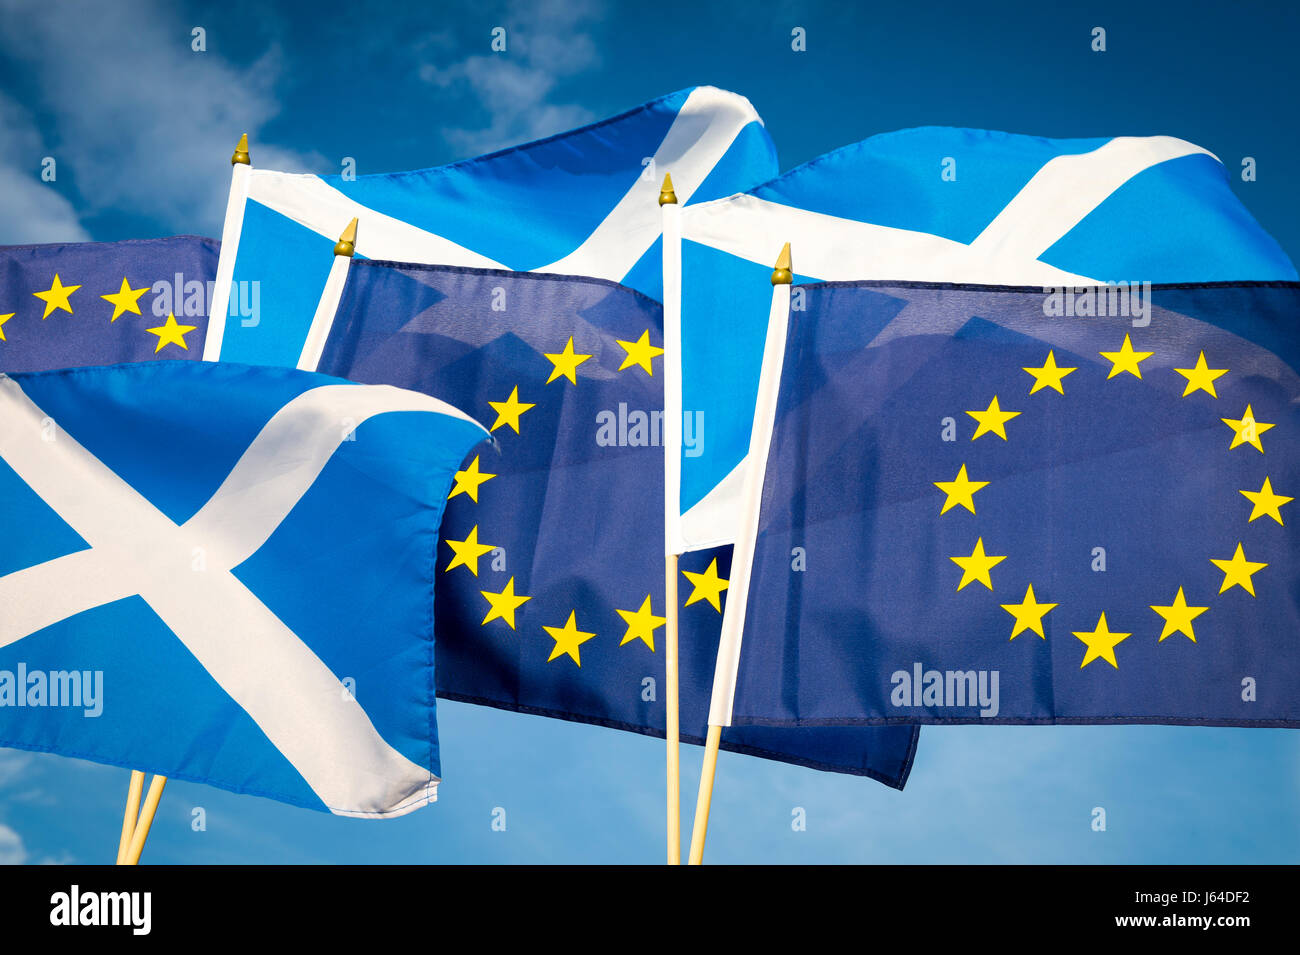 Flags of Scotland and the European Union flying together in the spirit of cooperation as Scotland considers its - Stock Image